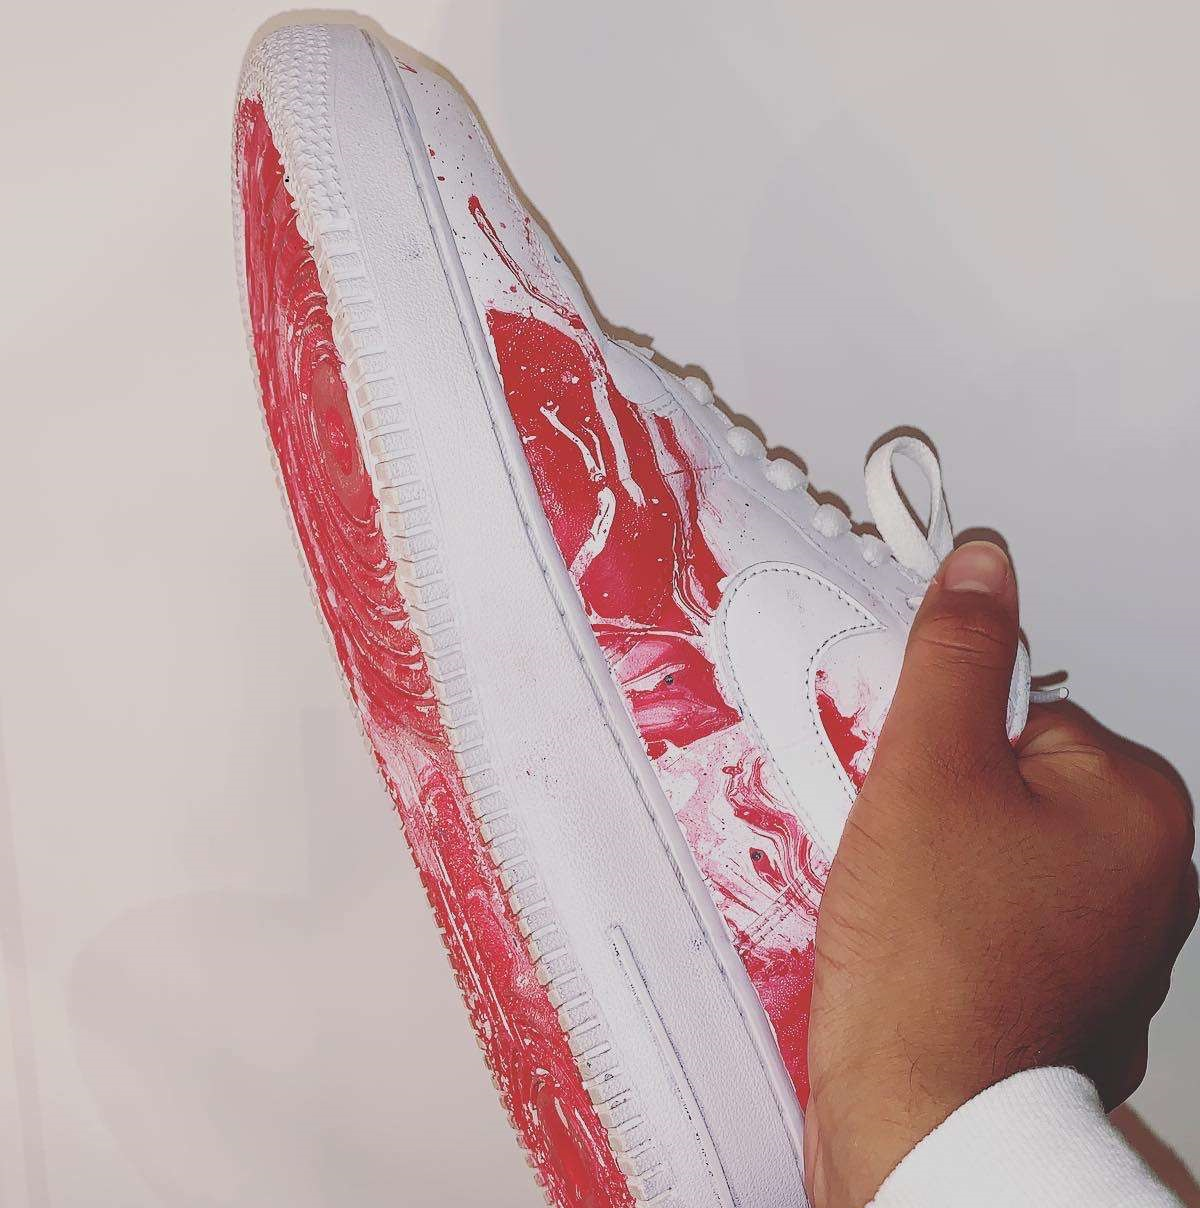 Air Force One customized by Dunbar junior Andrew Herrera. He makes money designing sneakers for resale.